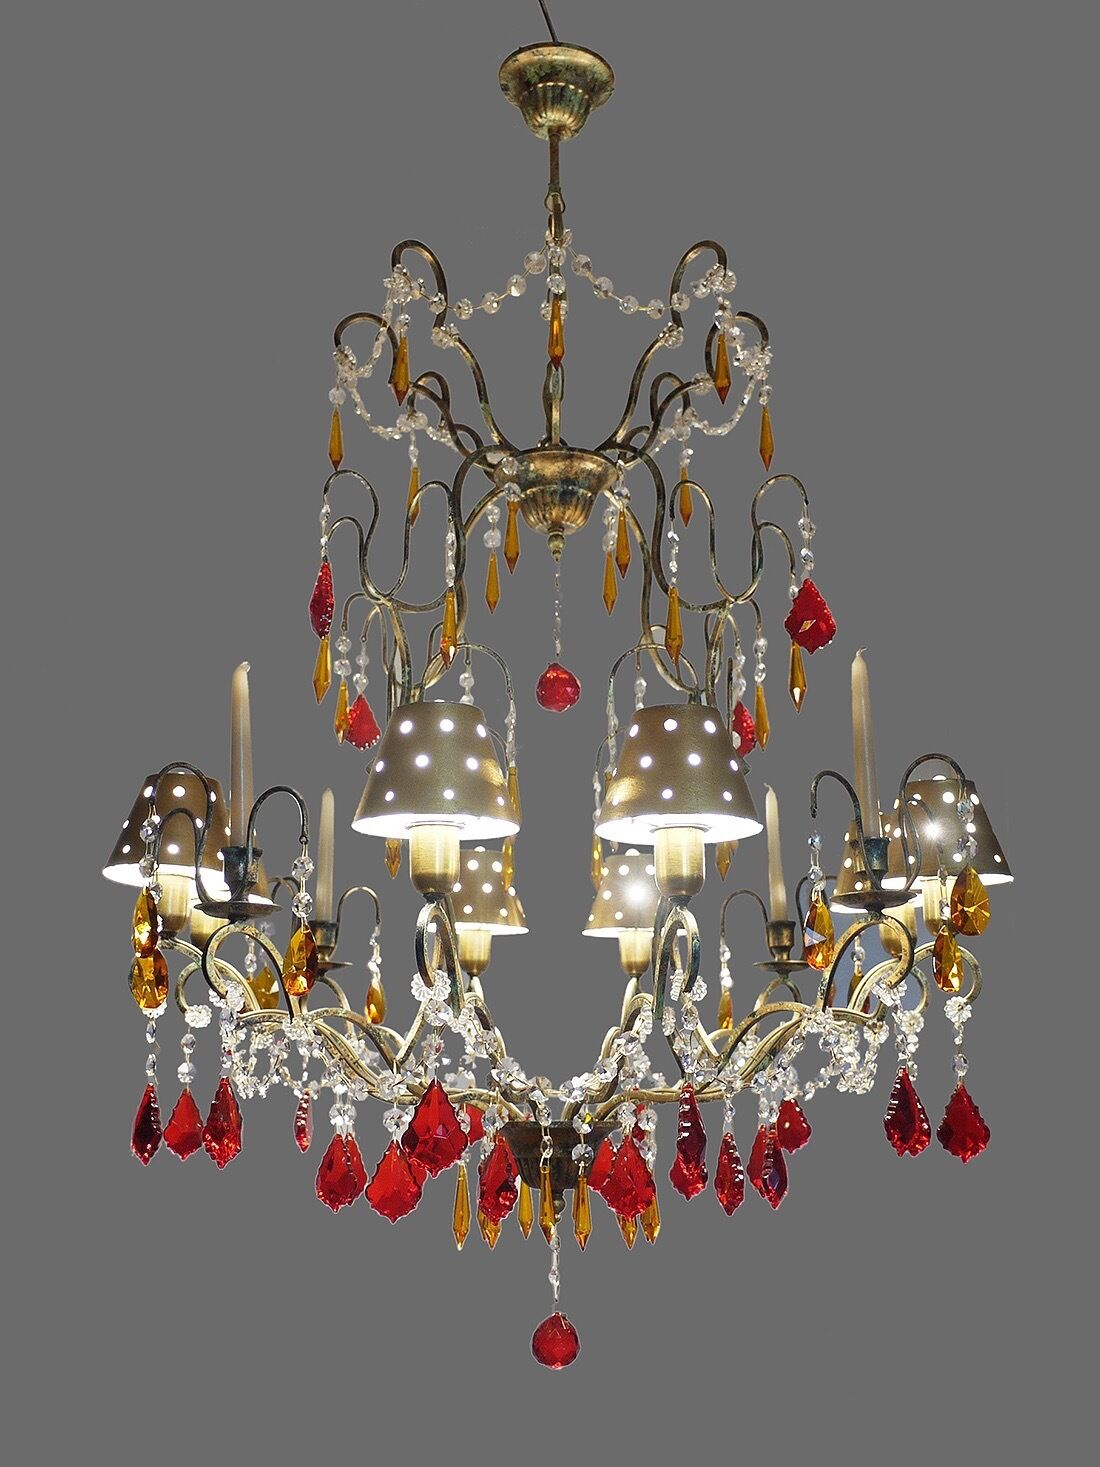 Huge Crystal& Wrought Iron CHANDELIER with 8 Bulbs + 4 Candles & Metal Shades